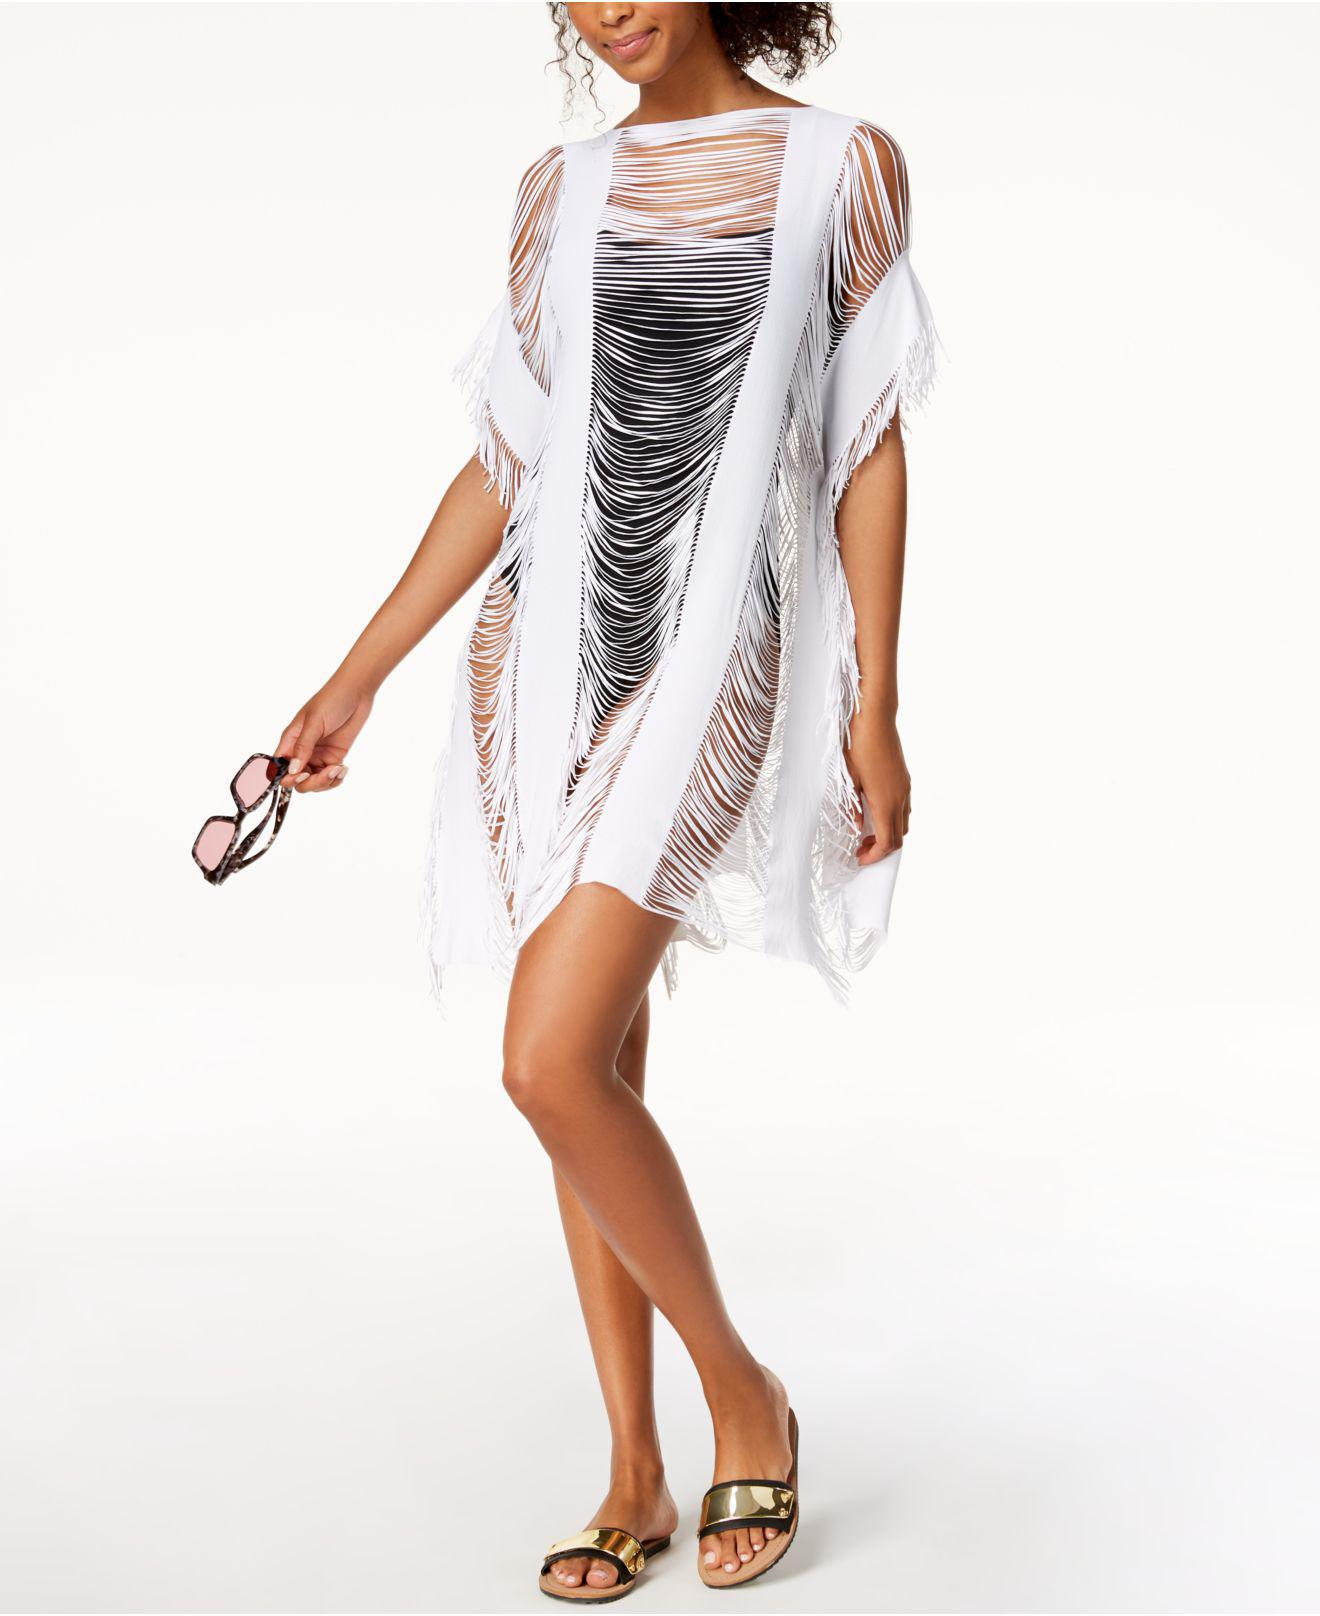 a11ddfce1a22a Kenneth Cole Sheer Fringe Cover-up in White - Lyst